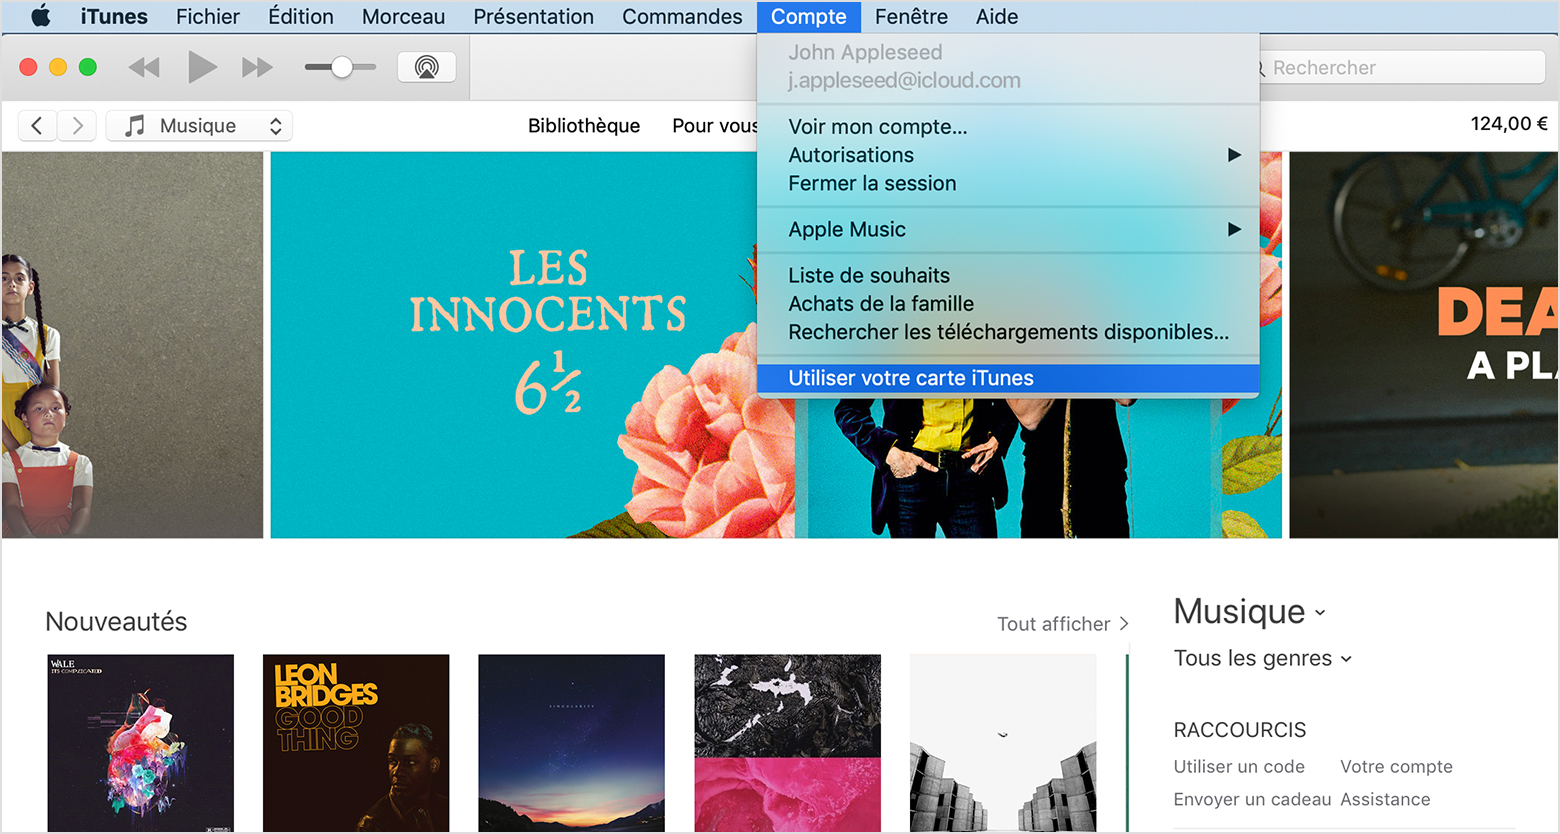 iTunes affichant le menu Compte